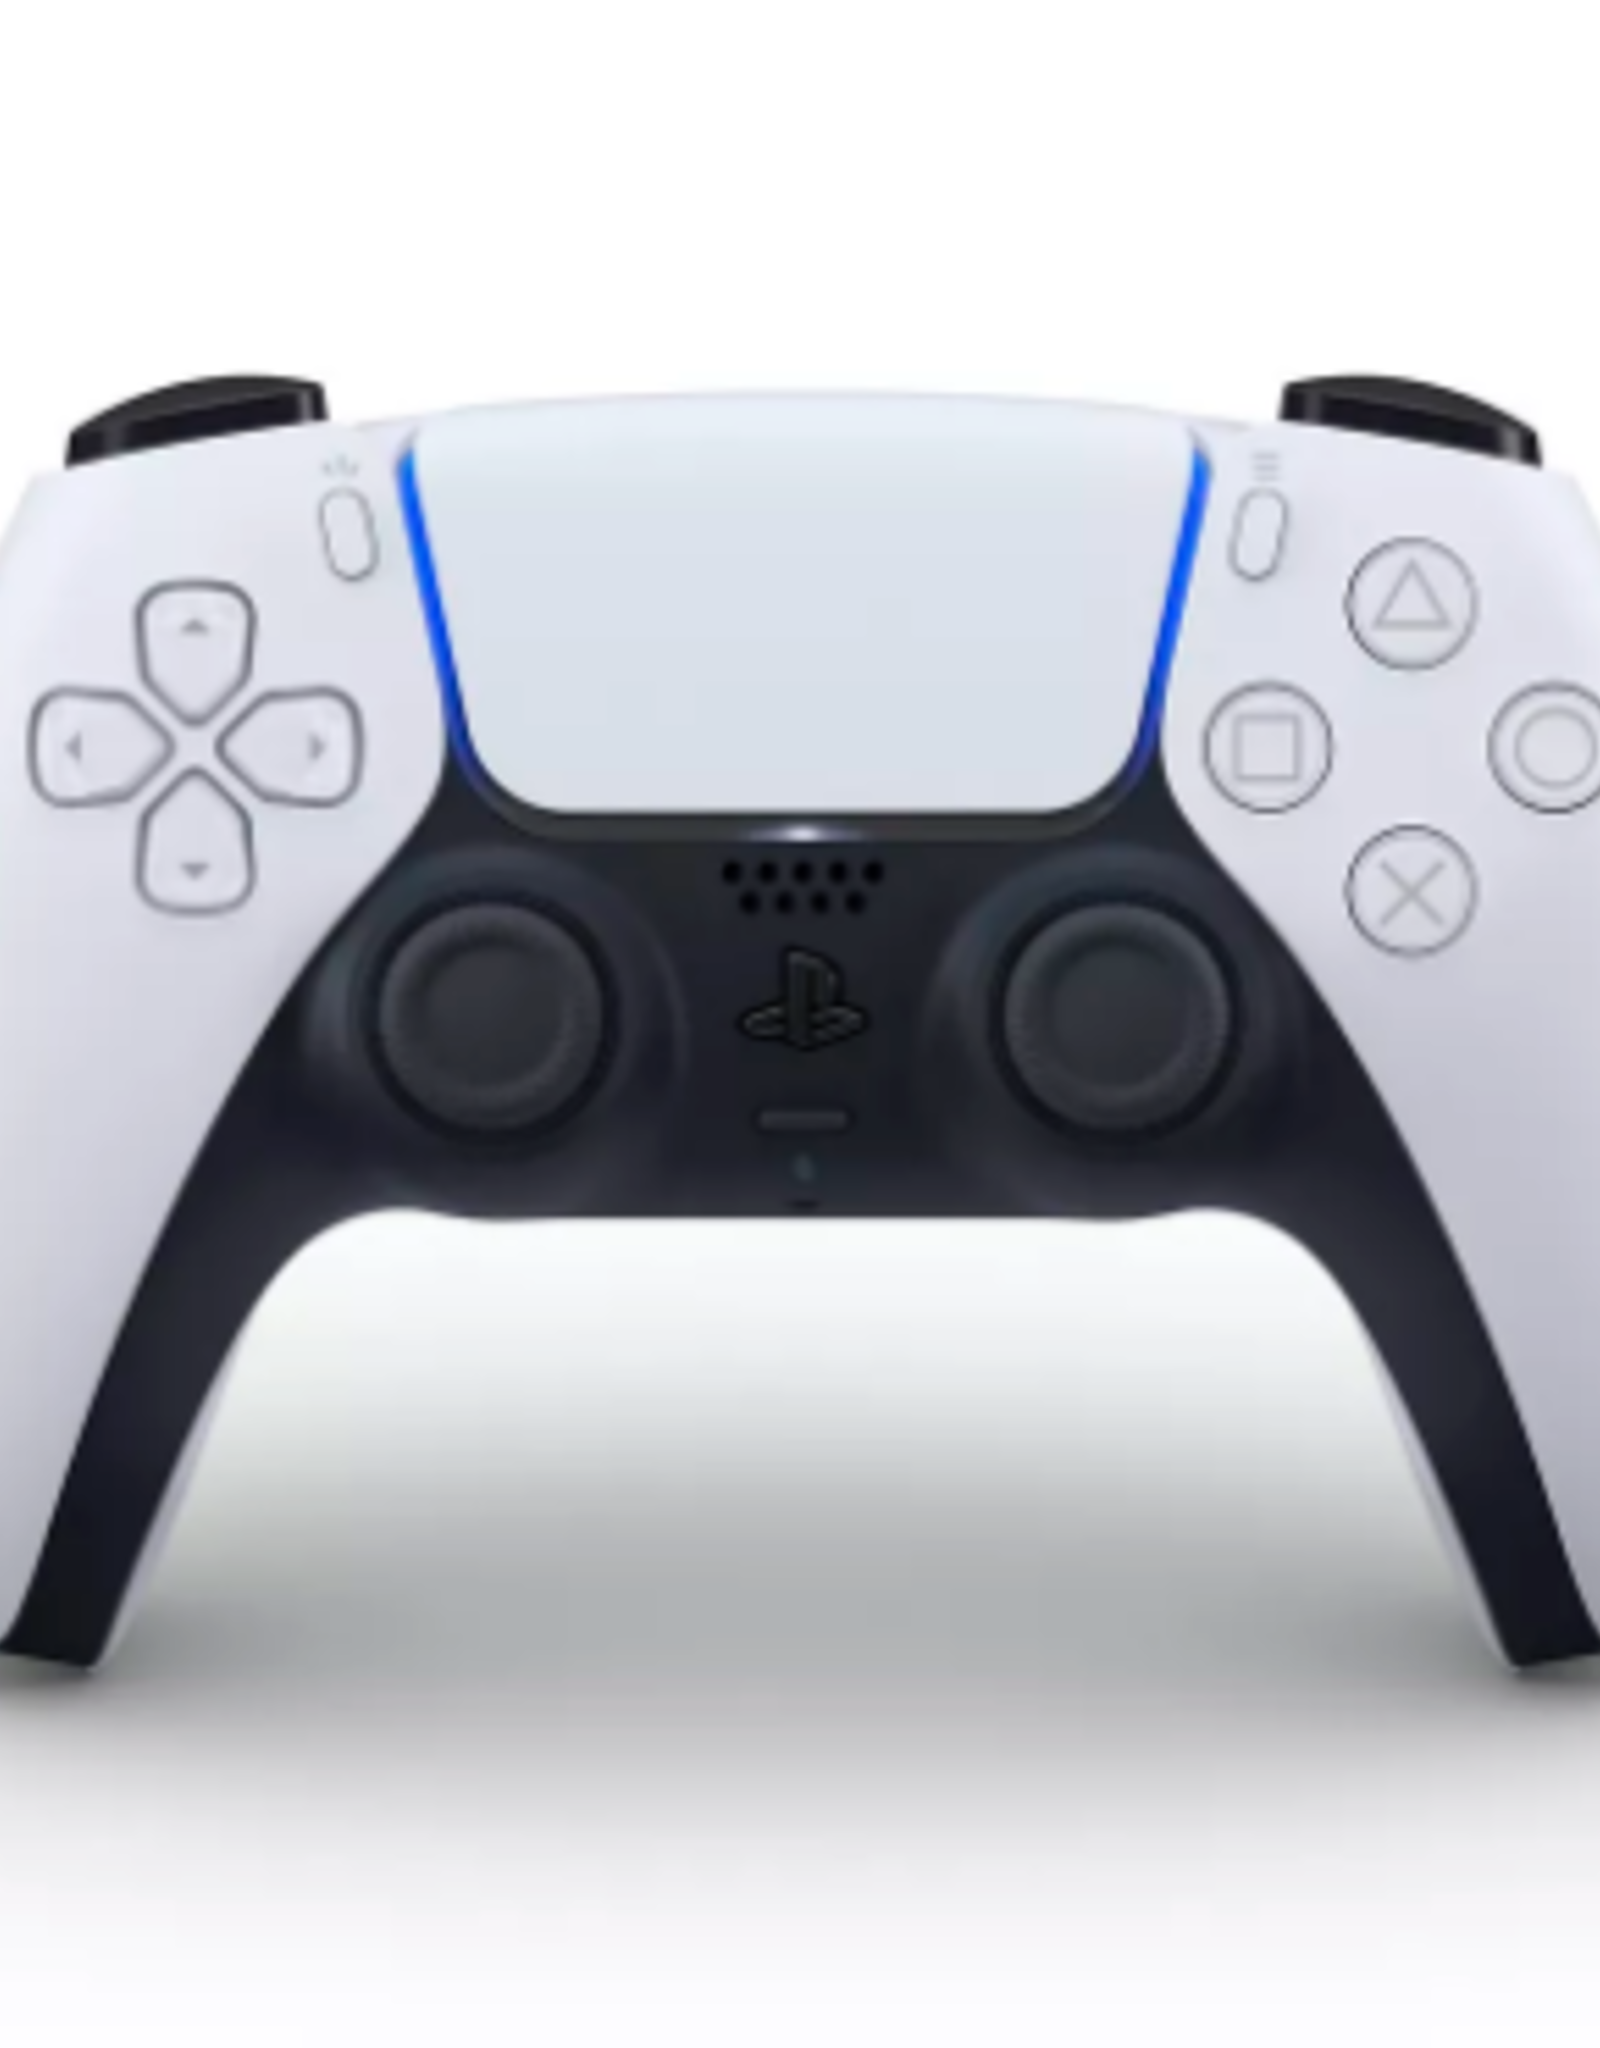 Sony DUALSENSE WIRELESS CONTROLLER | PS5